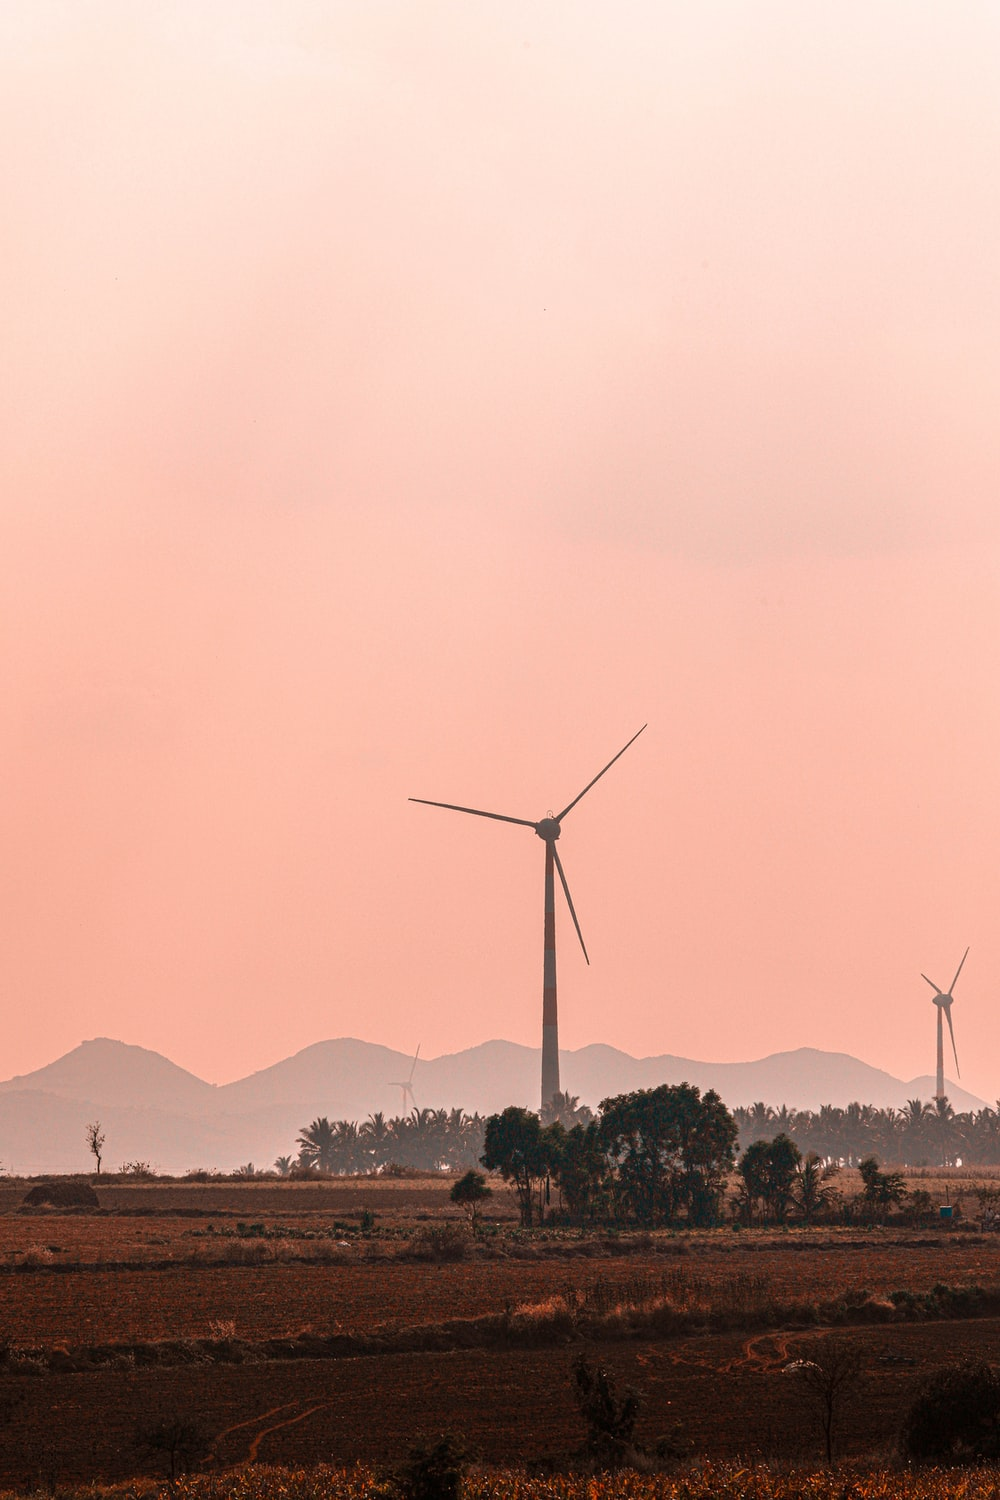 wind turbines on green grass field during daytime